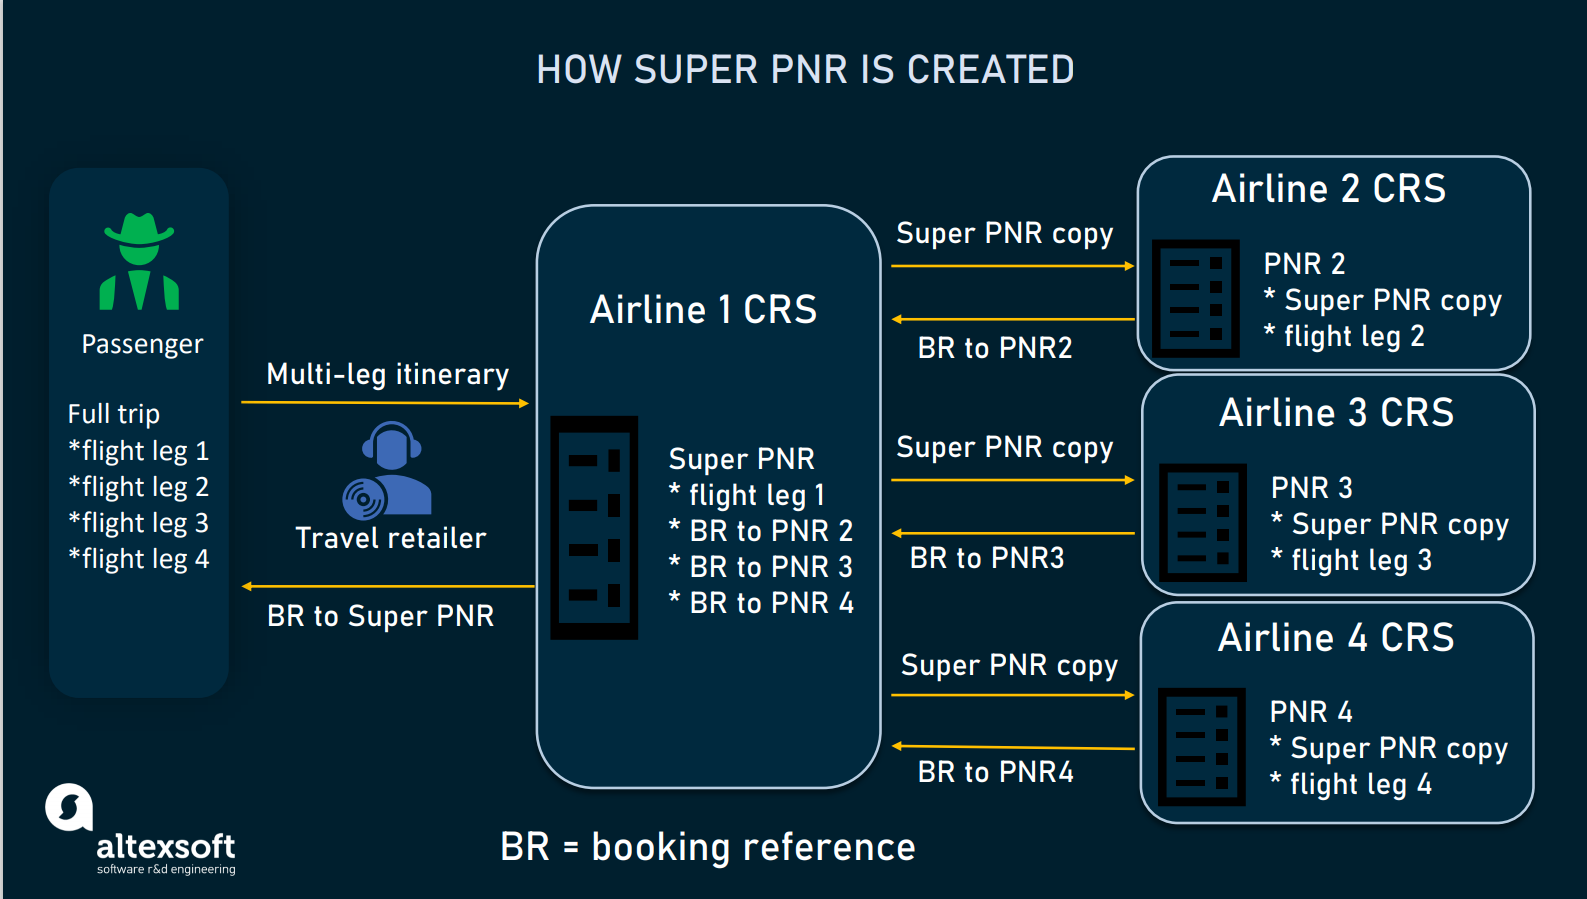 How Super PNR is generated